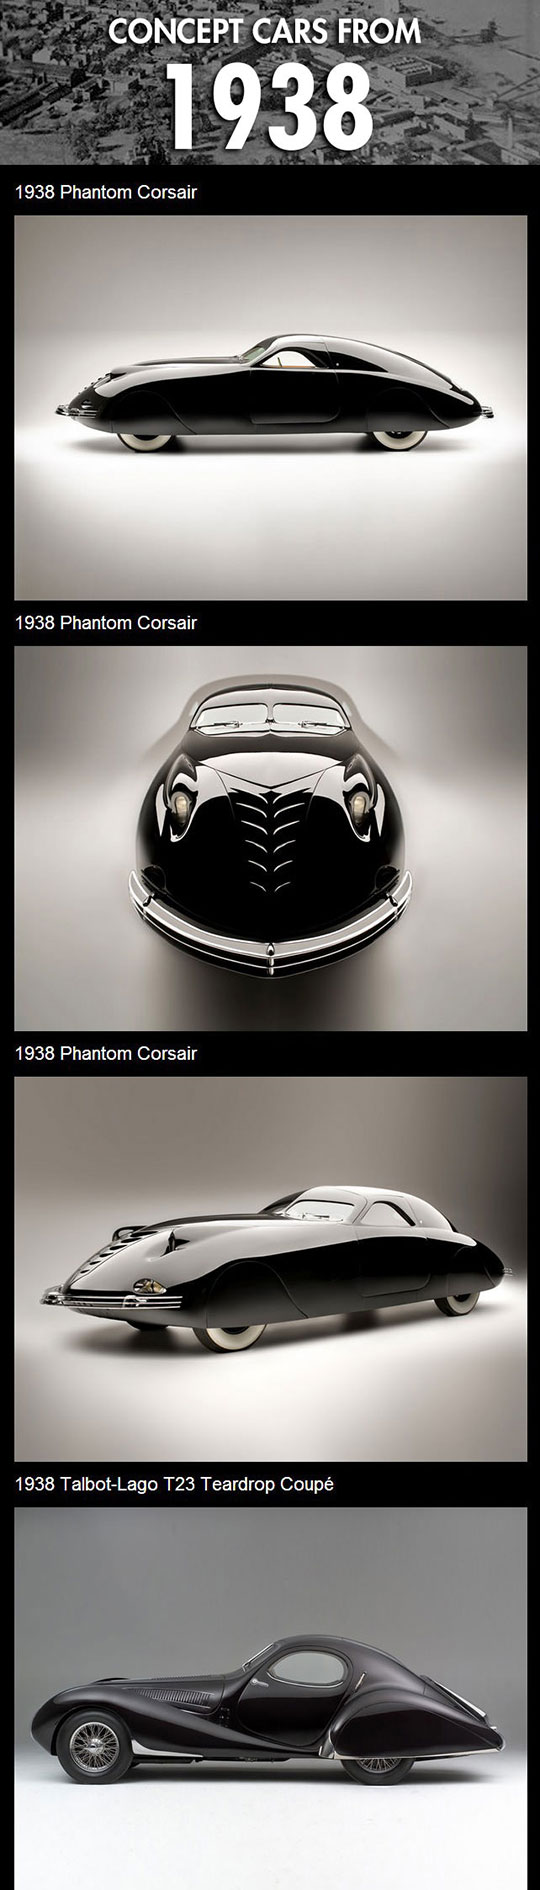 Concept cars from 1938...